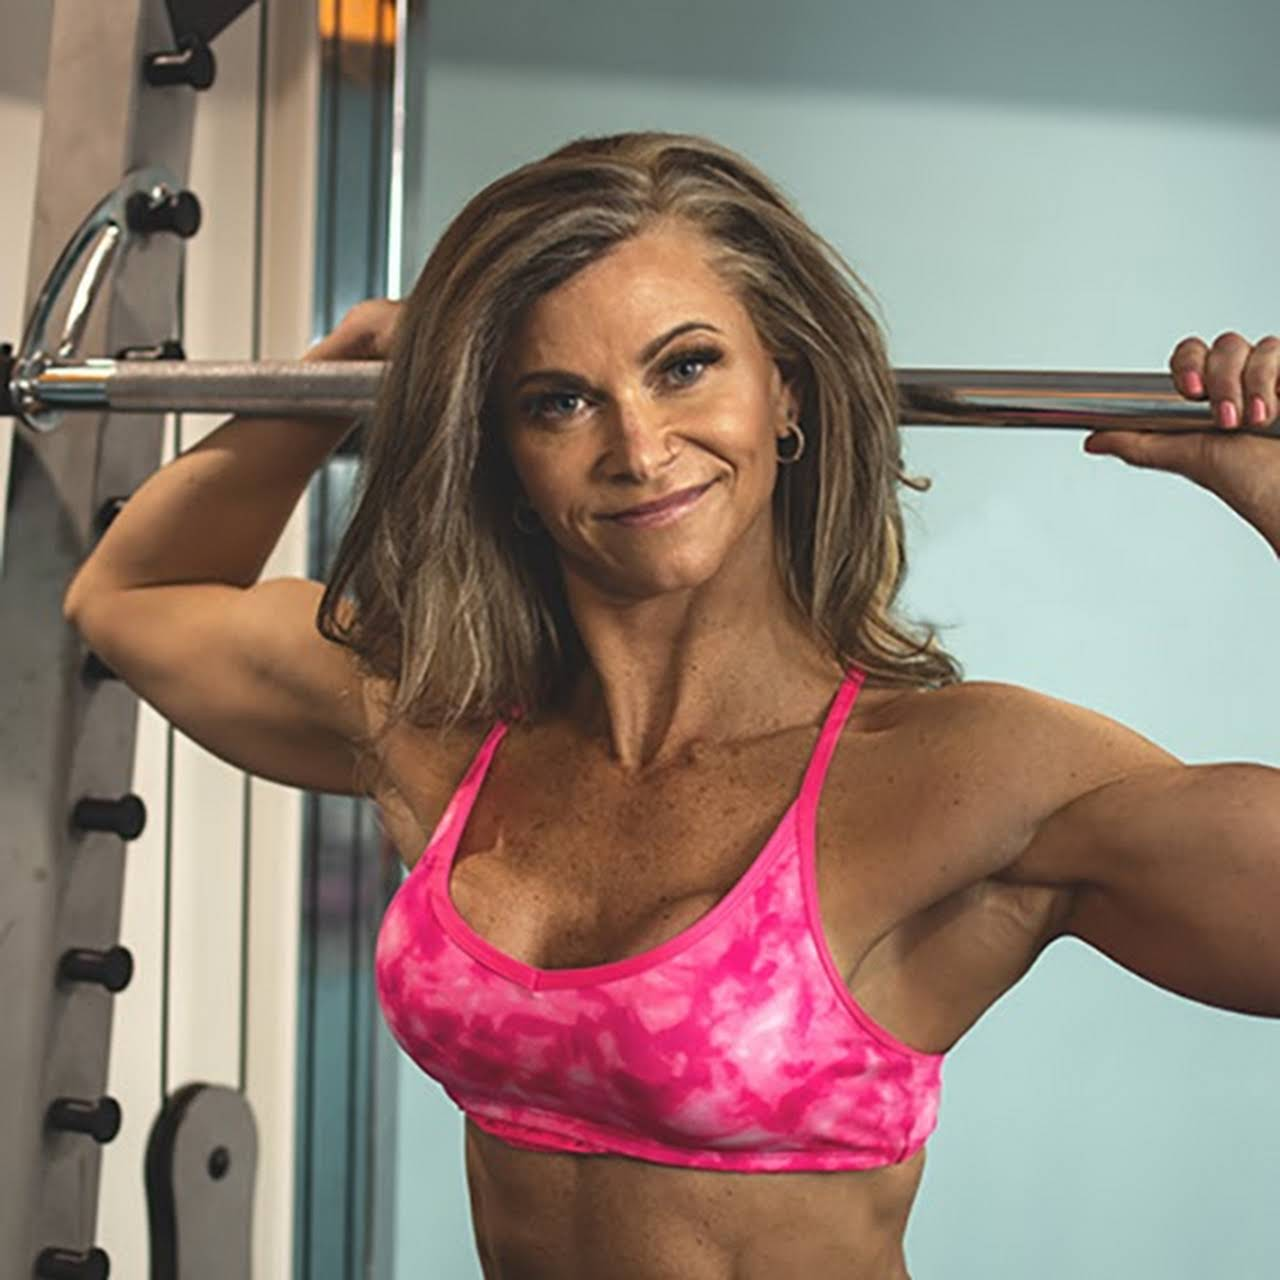 bluewater beach fitness - Gym and supplements in Tiny